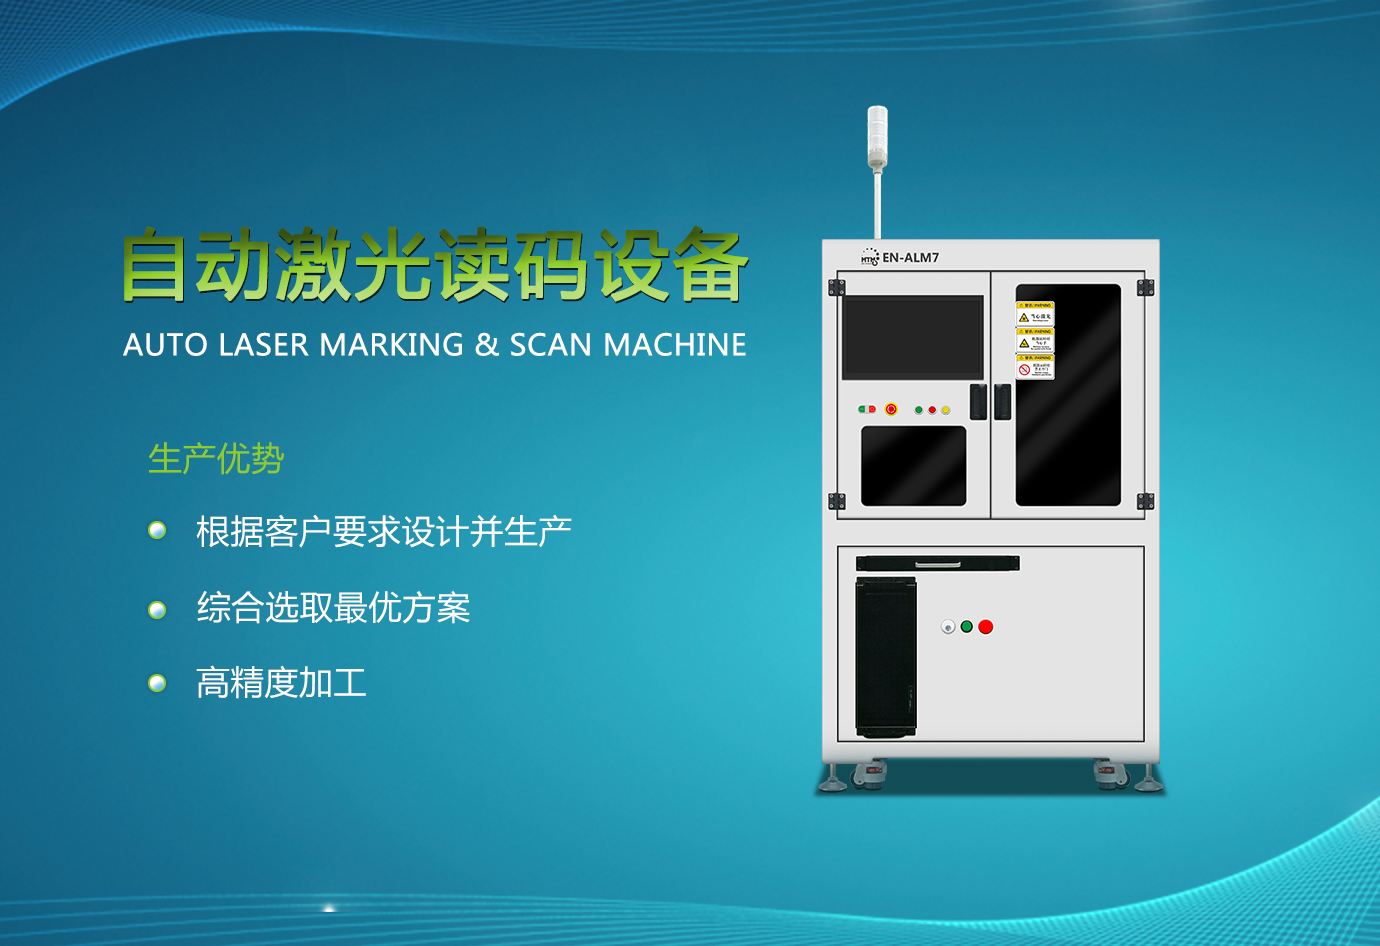 AUTO LASER MARKING AND SCAN MACHINE 【EN-ALM7】